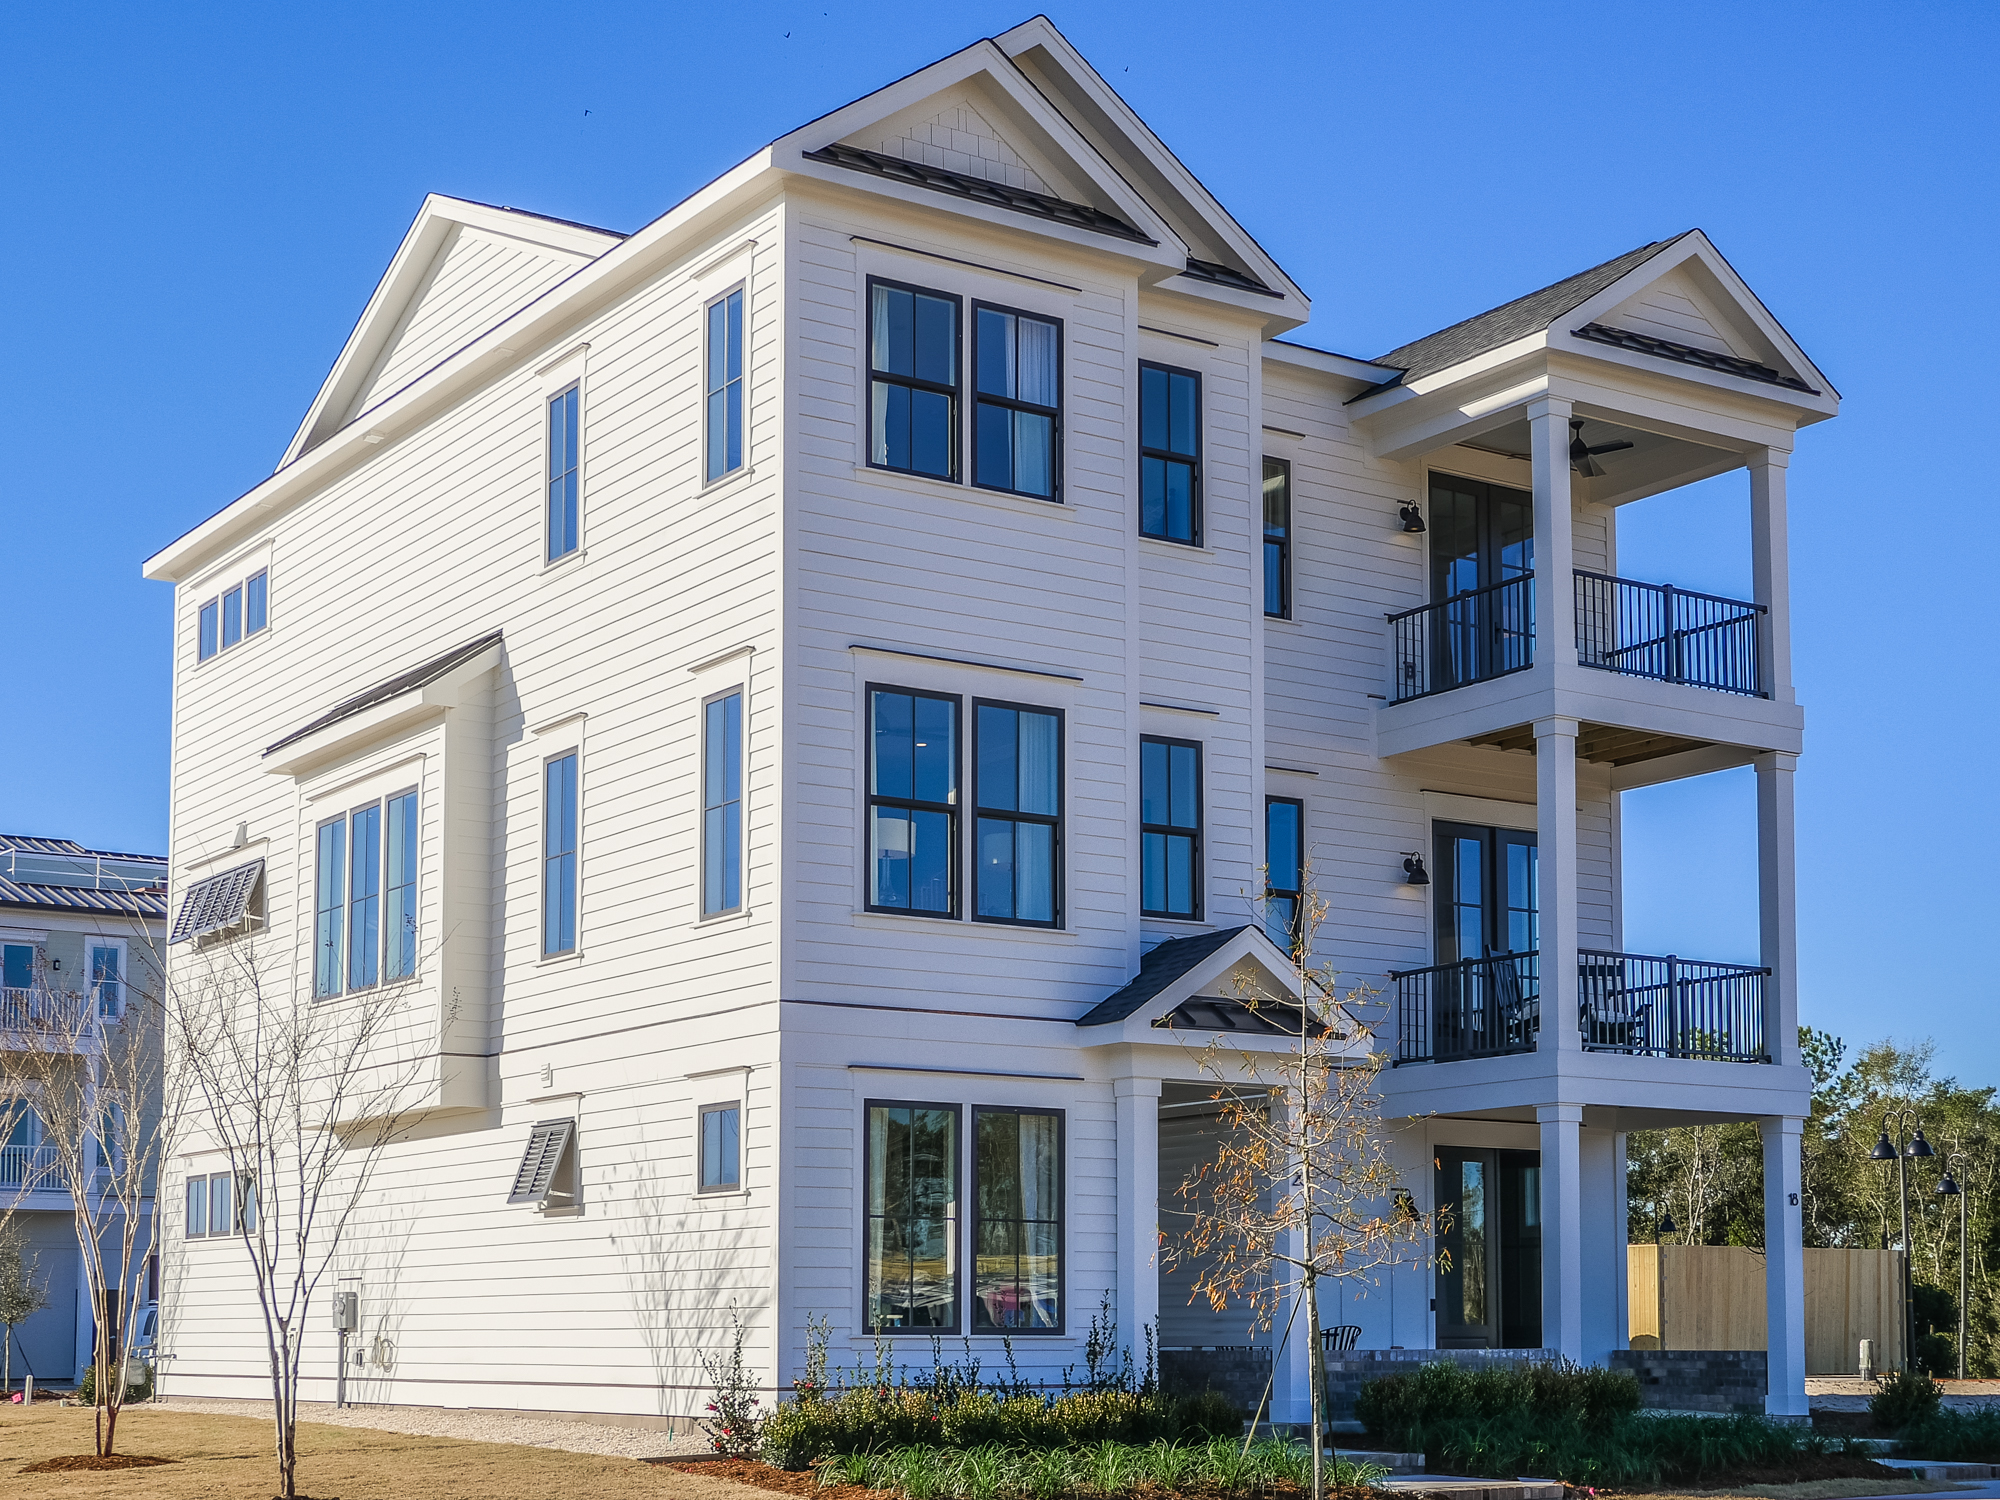 Townhouse for Sale at Inviting Townhouse in New Waterfront Community 3605 Watercraft Ferry Ave Wilmington, North Carolina, 28412 United States